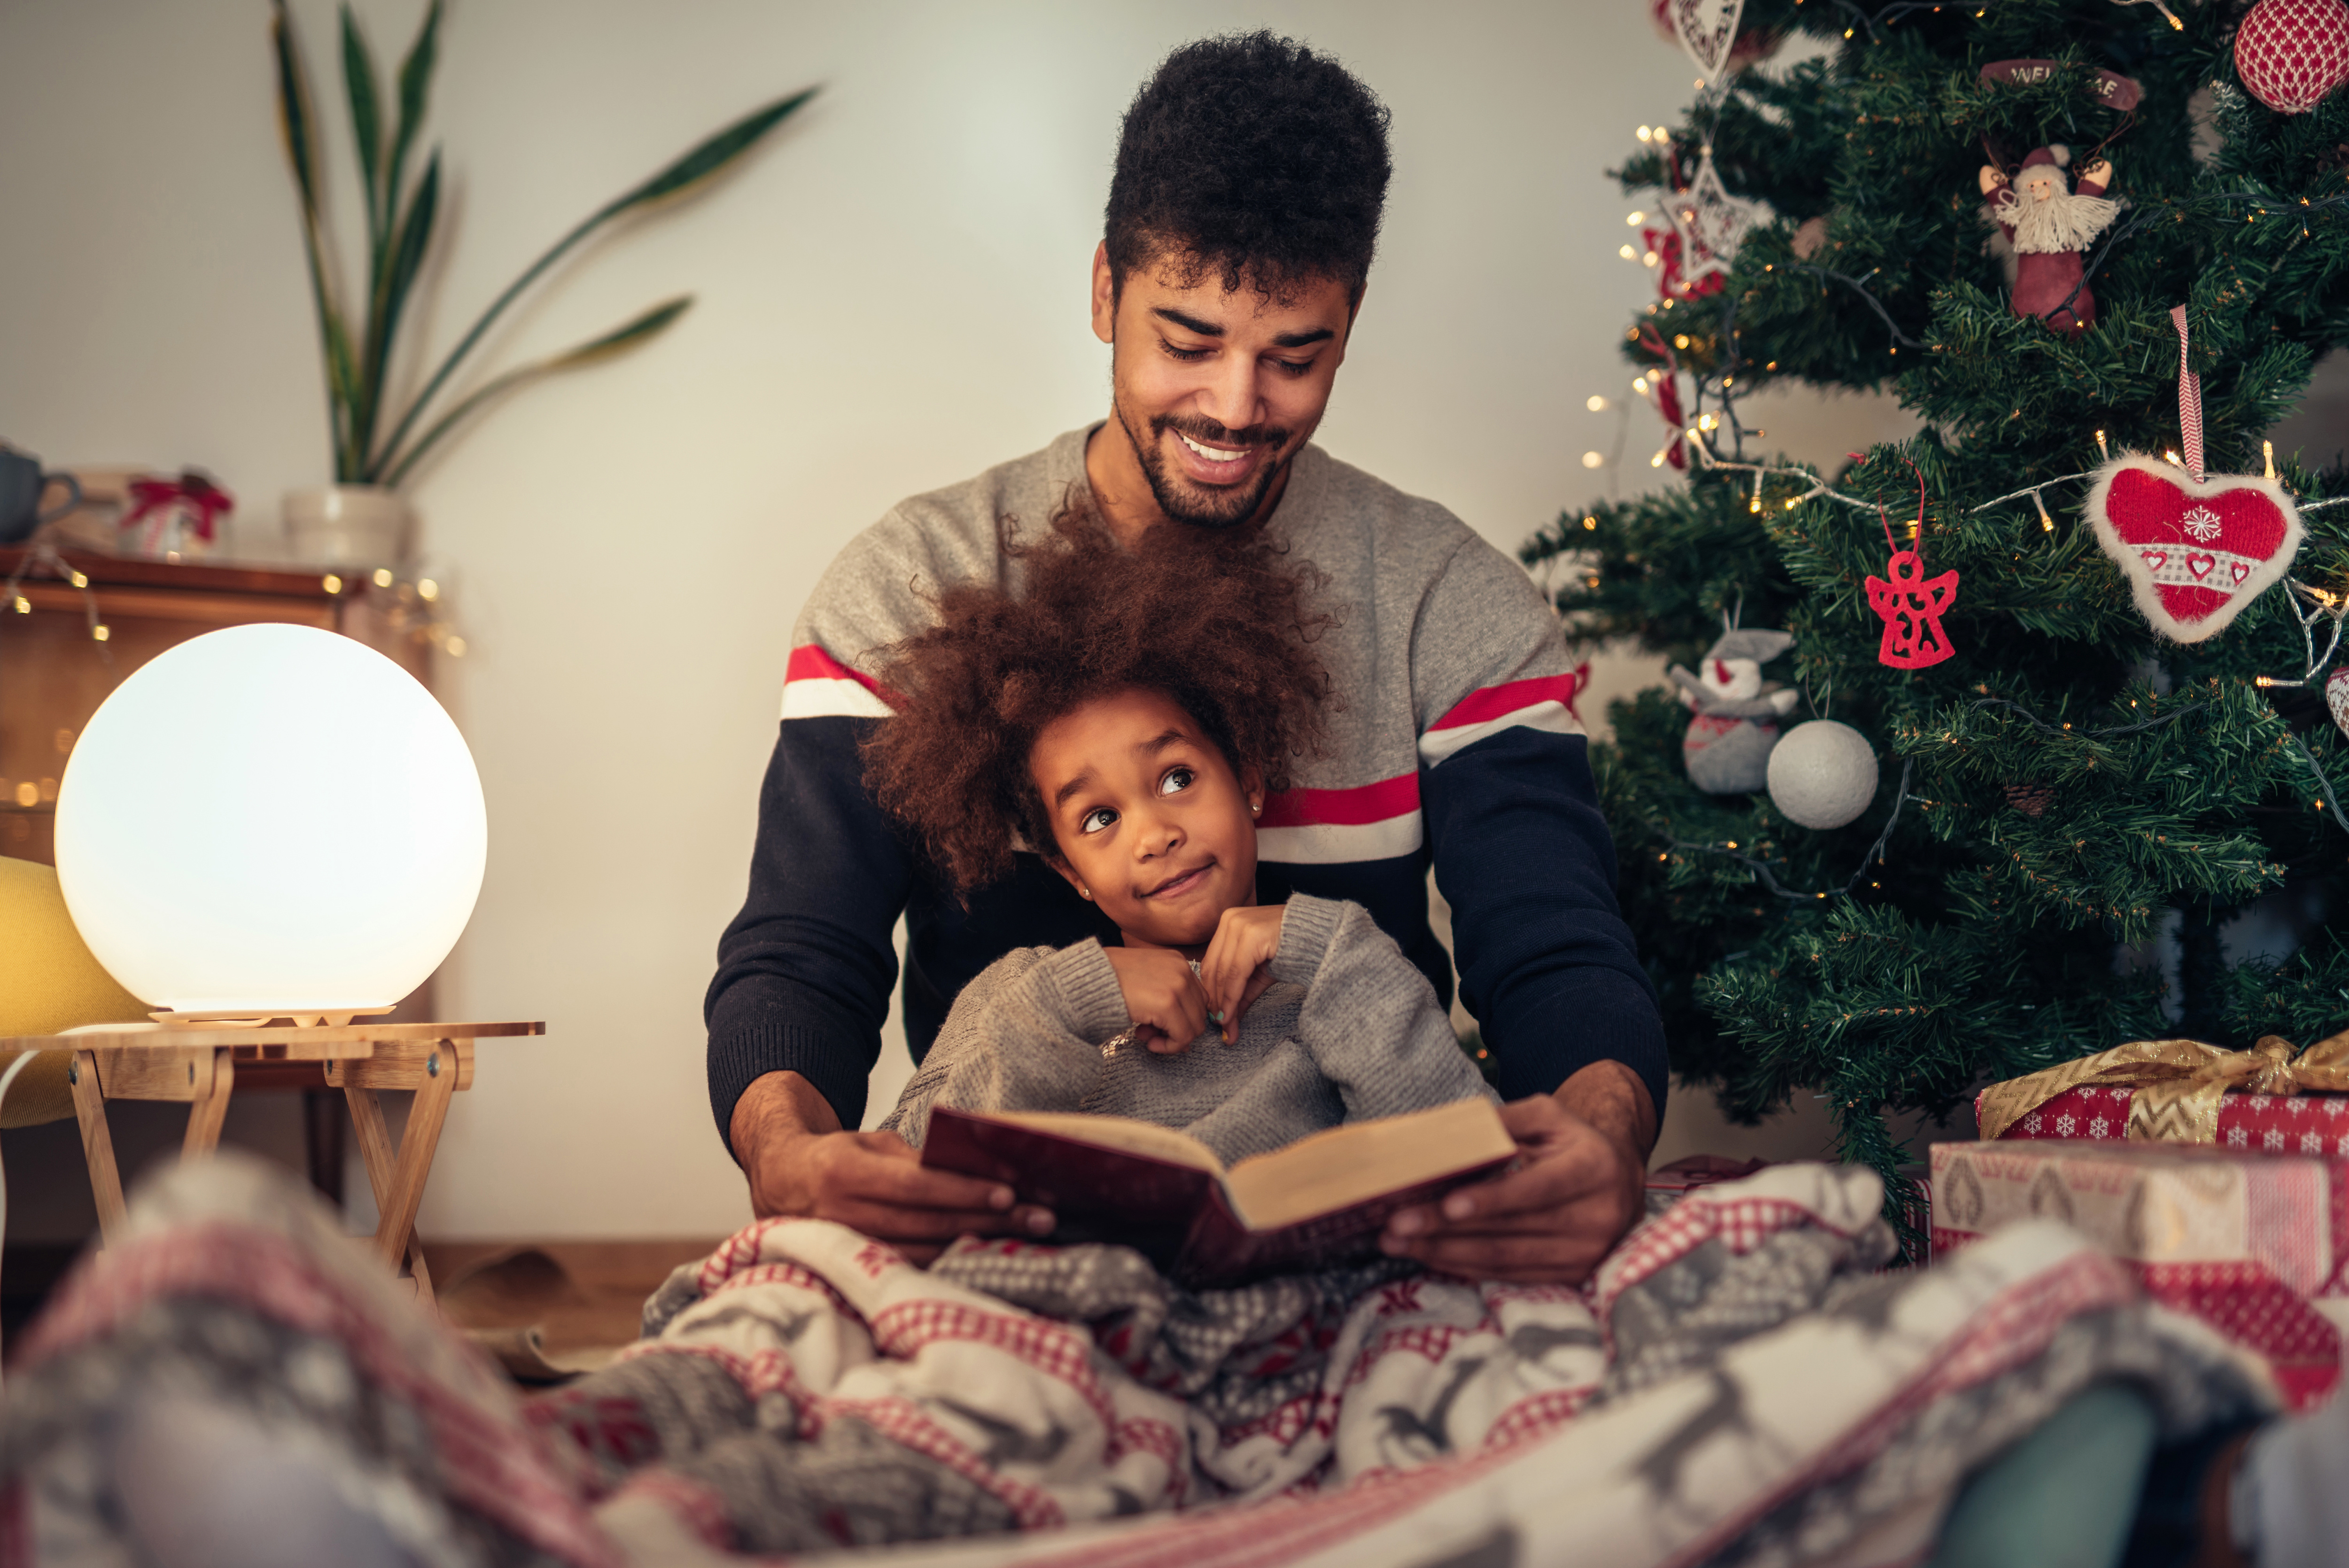 eco-friendly books - gift -gift ideas - eco-friendly - holidays -holiday gift - books - childrens books - an organic conversation - green media - green living - education - inspiration - helge hellberg